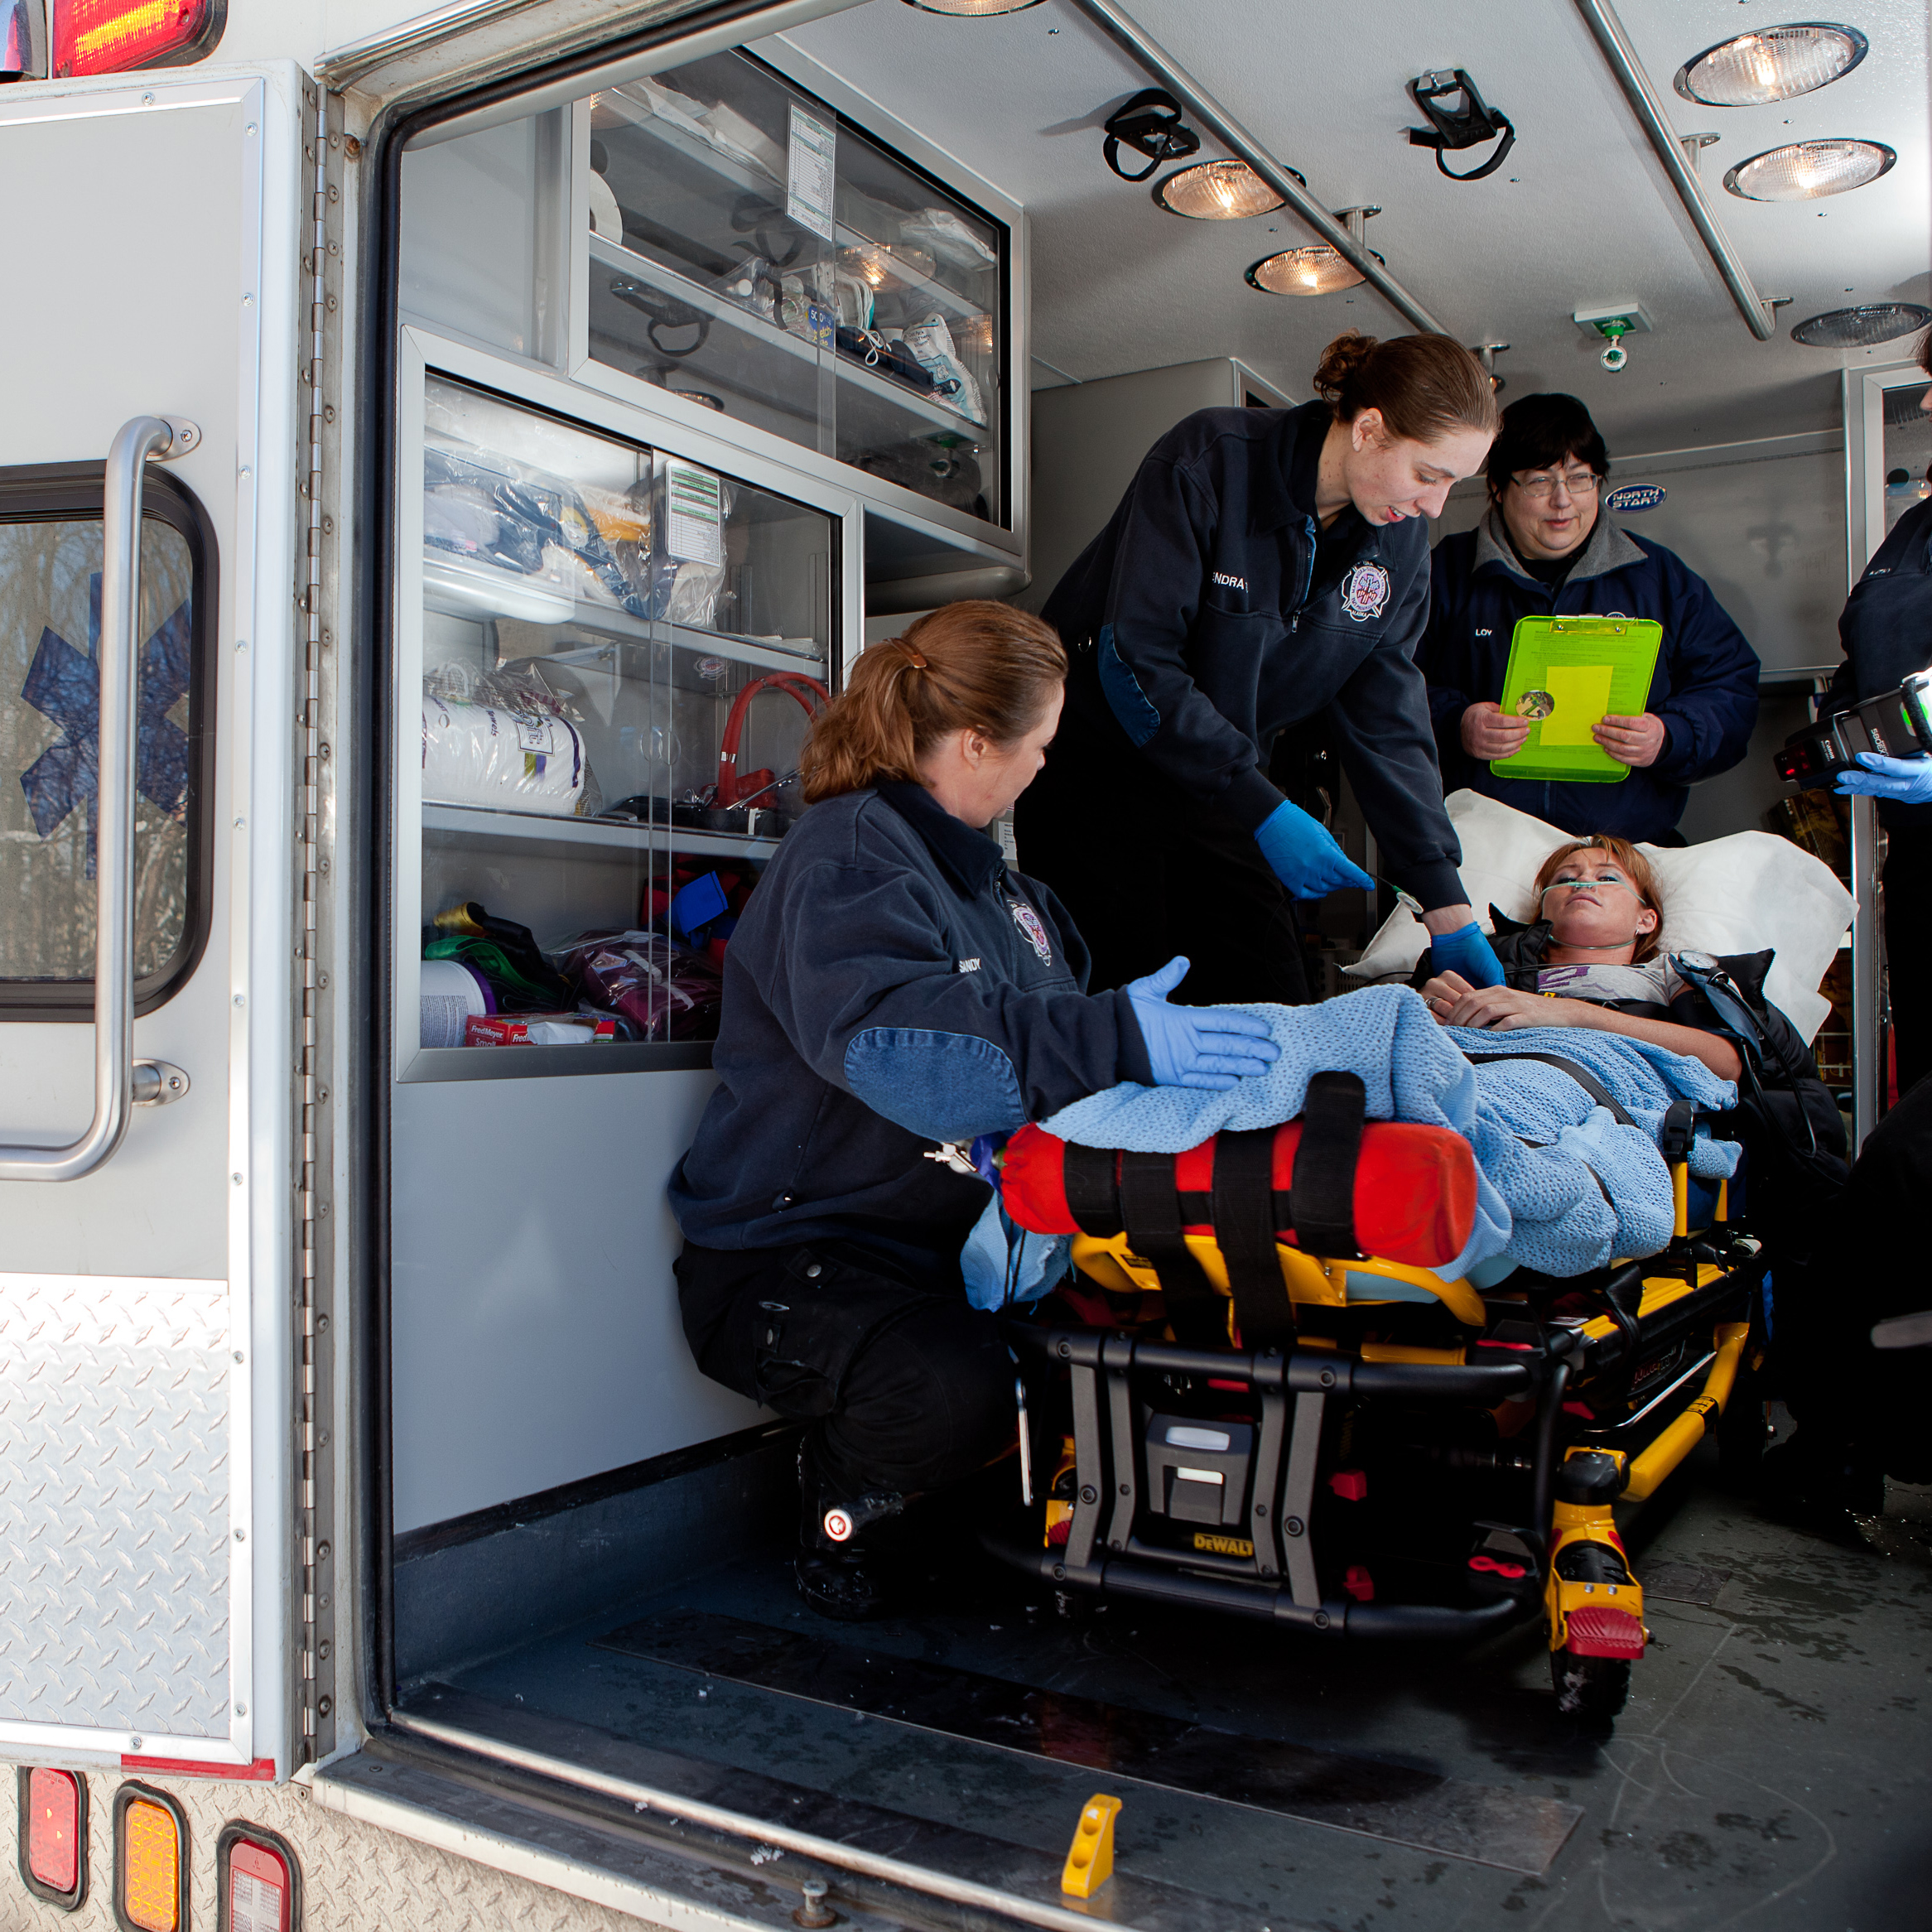 Four paramedics attending to a woman in a stretcher in the back of an ambulence.